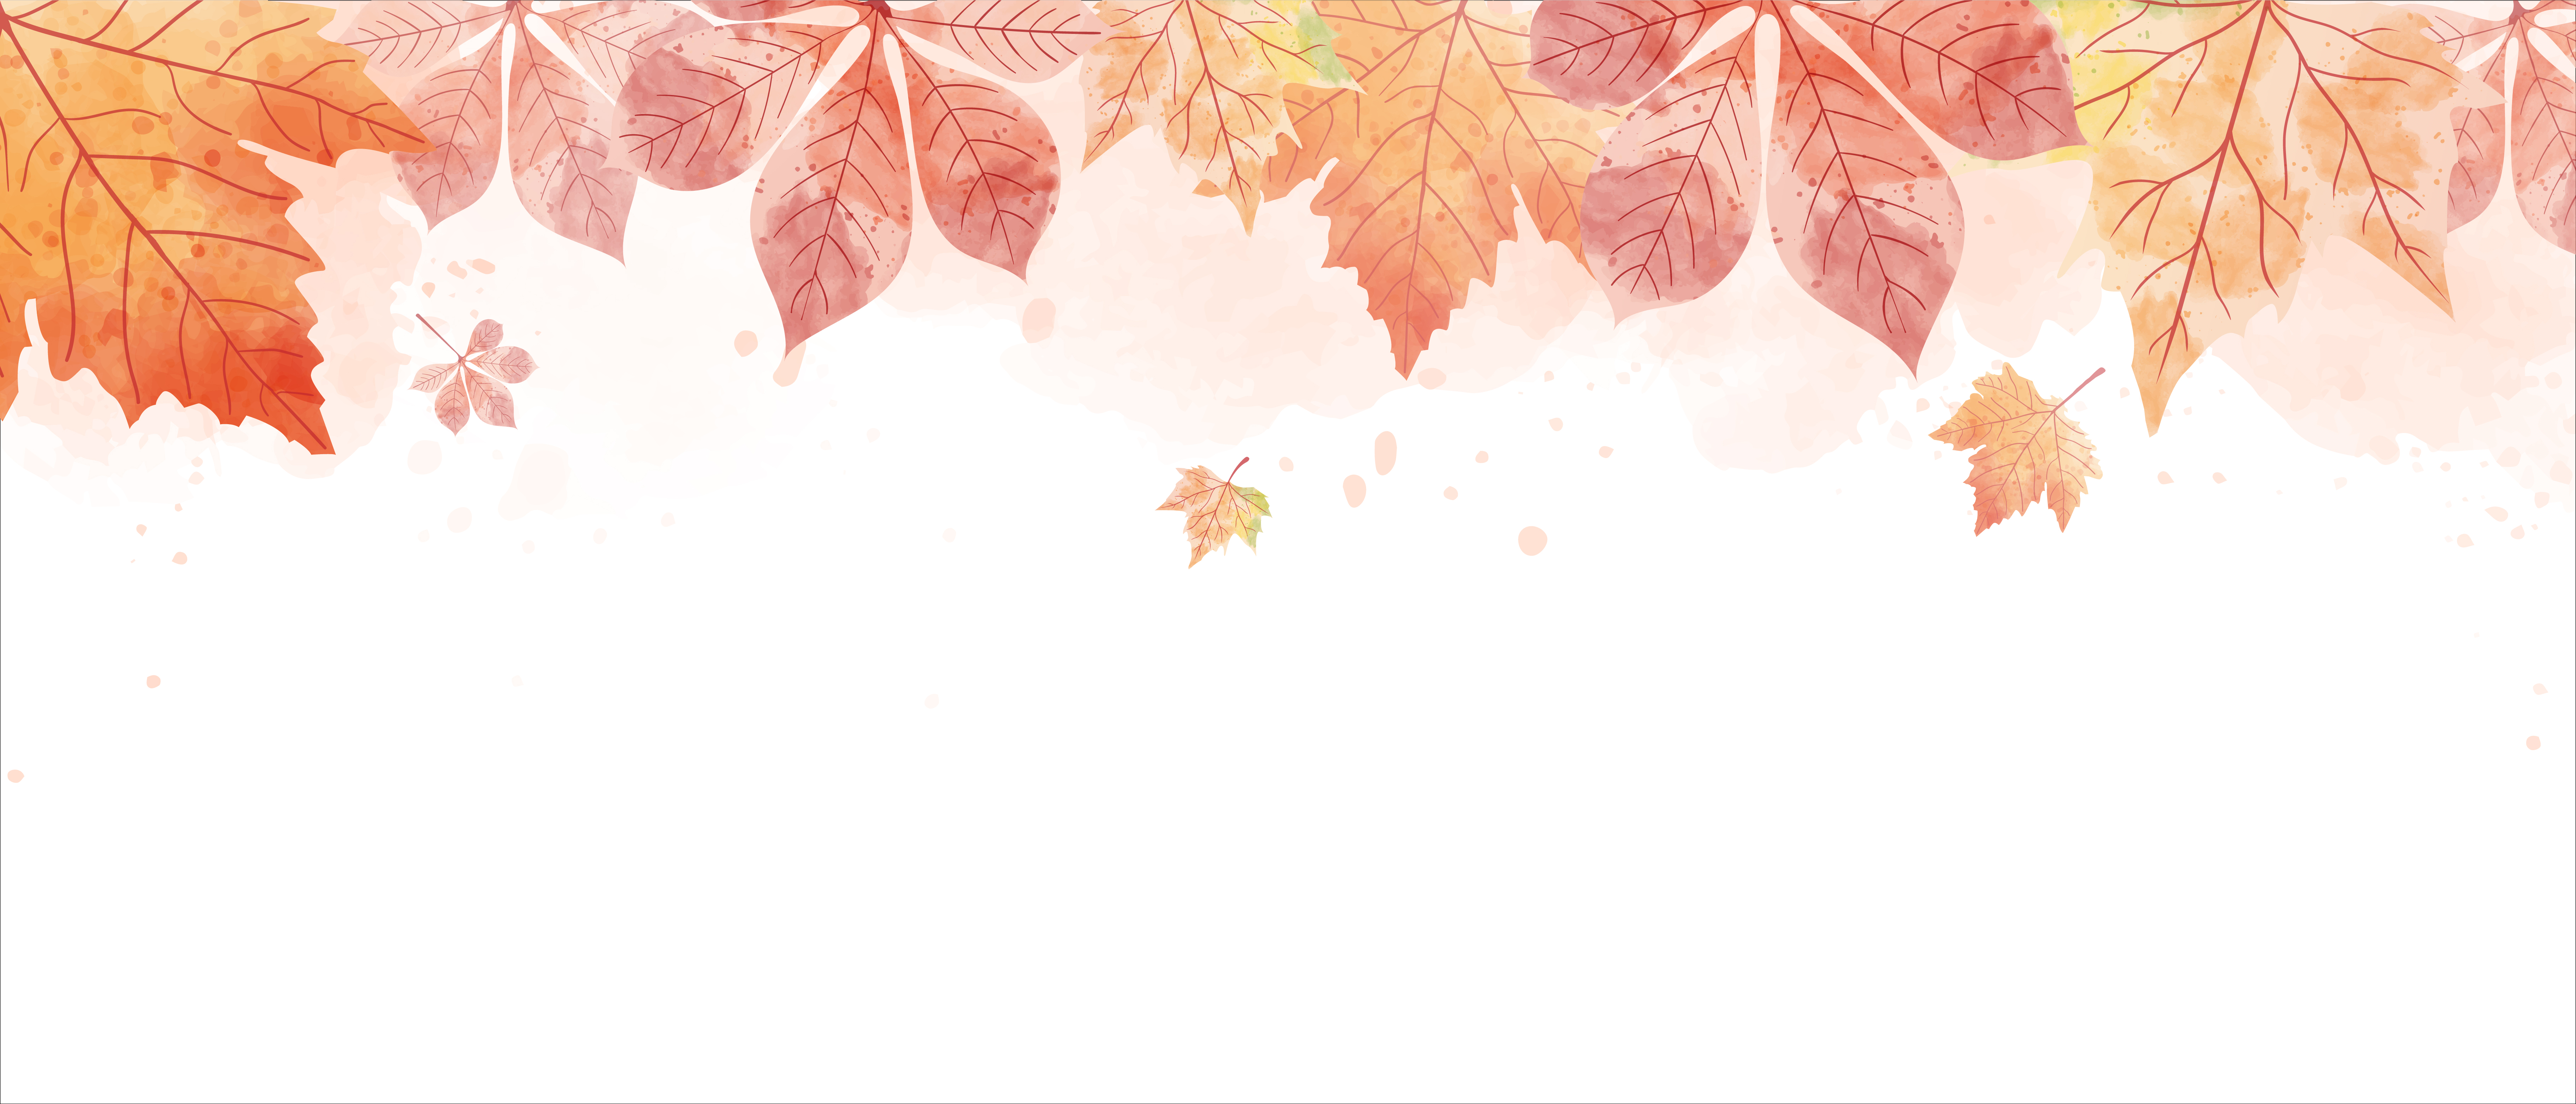 Watercolor Drawing Of Falling Red Leaves In Autumn Season Download Free Vectors Clipart Graphics Vector Art